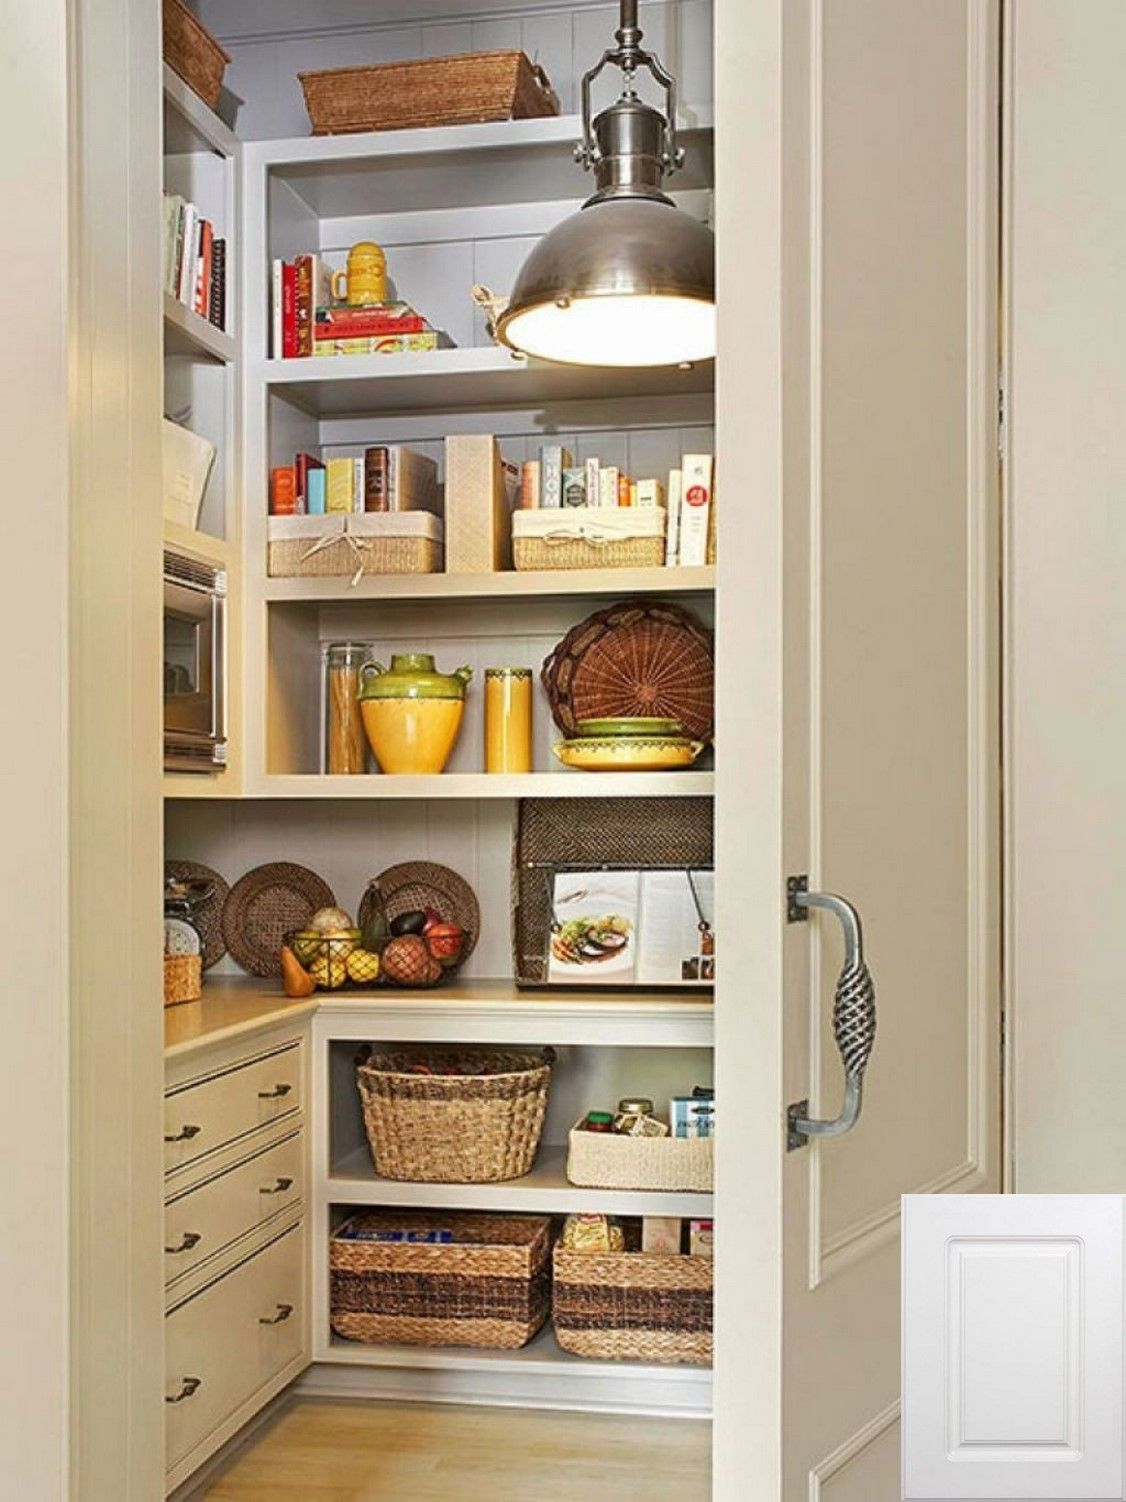 How To Add Extra Shelves To Kitchen Cabinets And Diy Kitchen Cabinets Hamilton Ontario Tiny Kitchen Pantry Design Pantry Design Small Kitchen Pantry